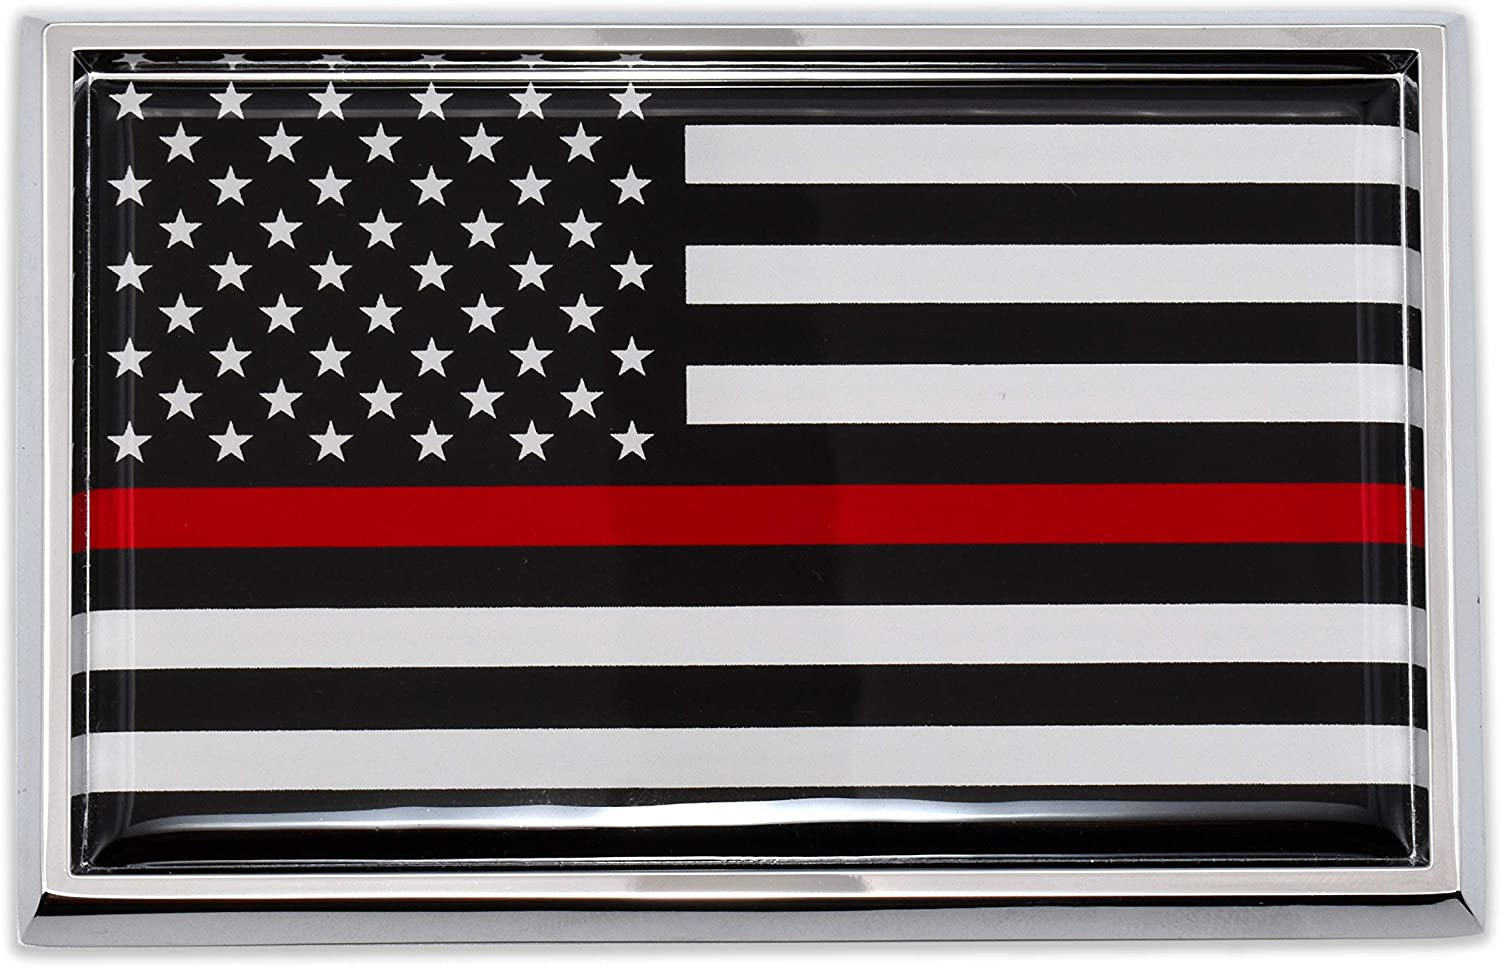 Firefighter Thin Red Line Flag Chrome Auto Emblem